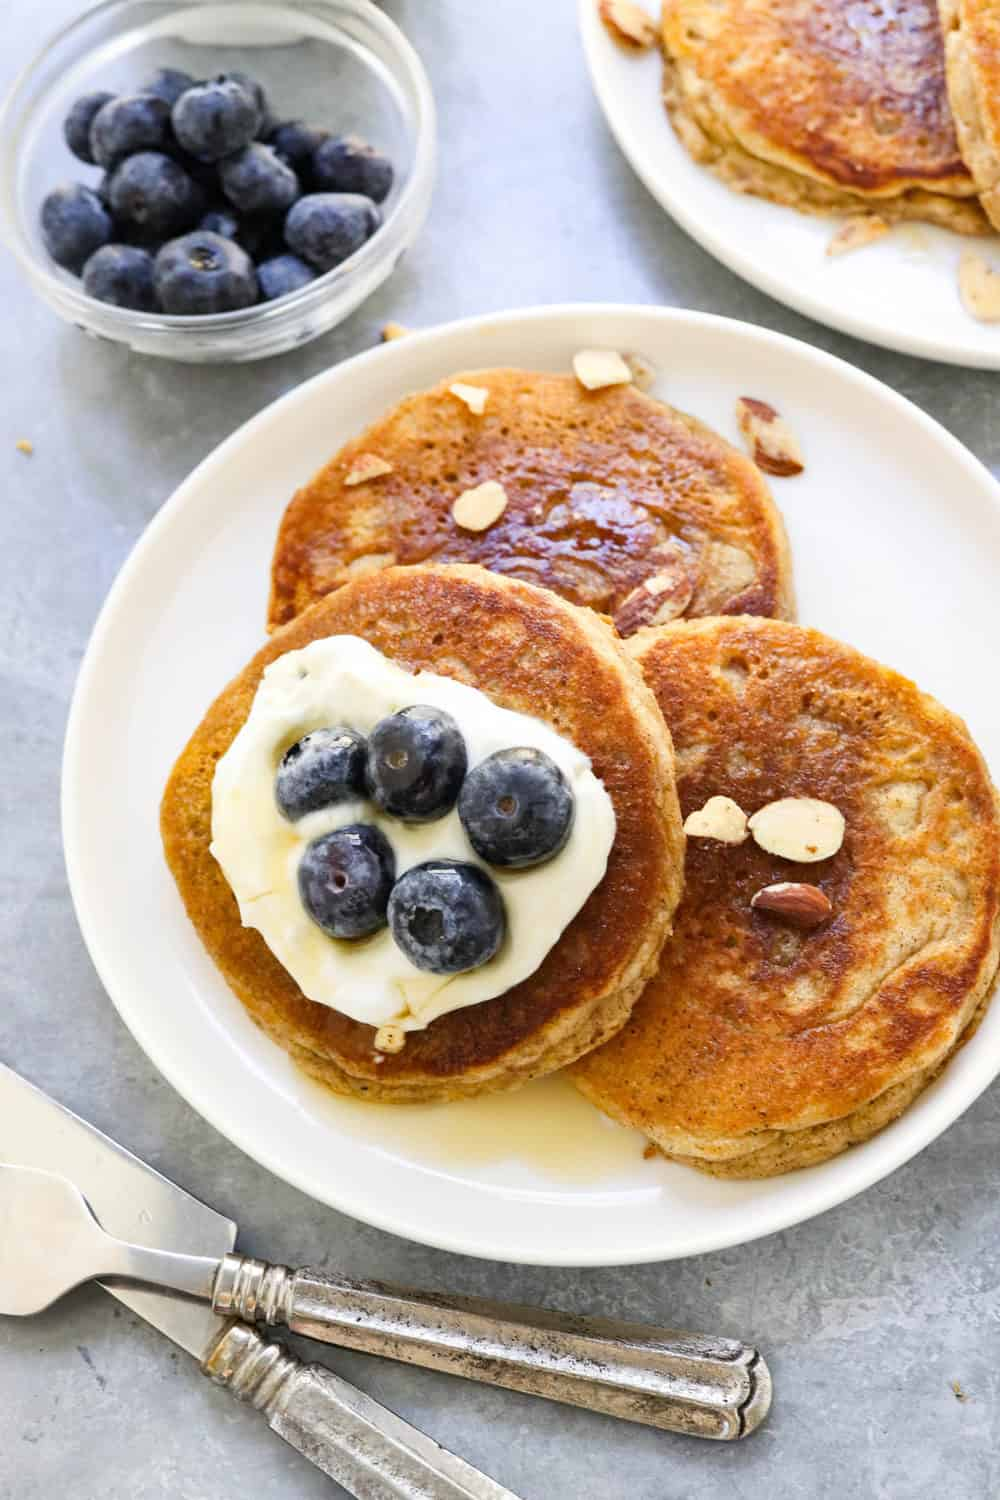 round plate of pancakes with syrup and blueberries on top of them and silverware next to it.